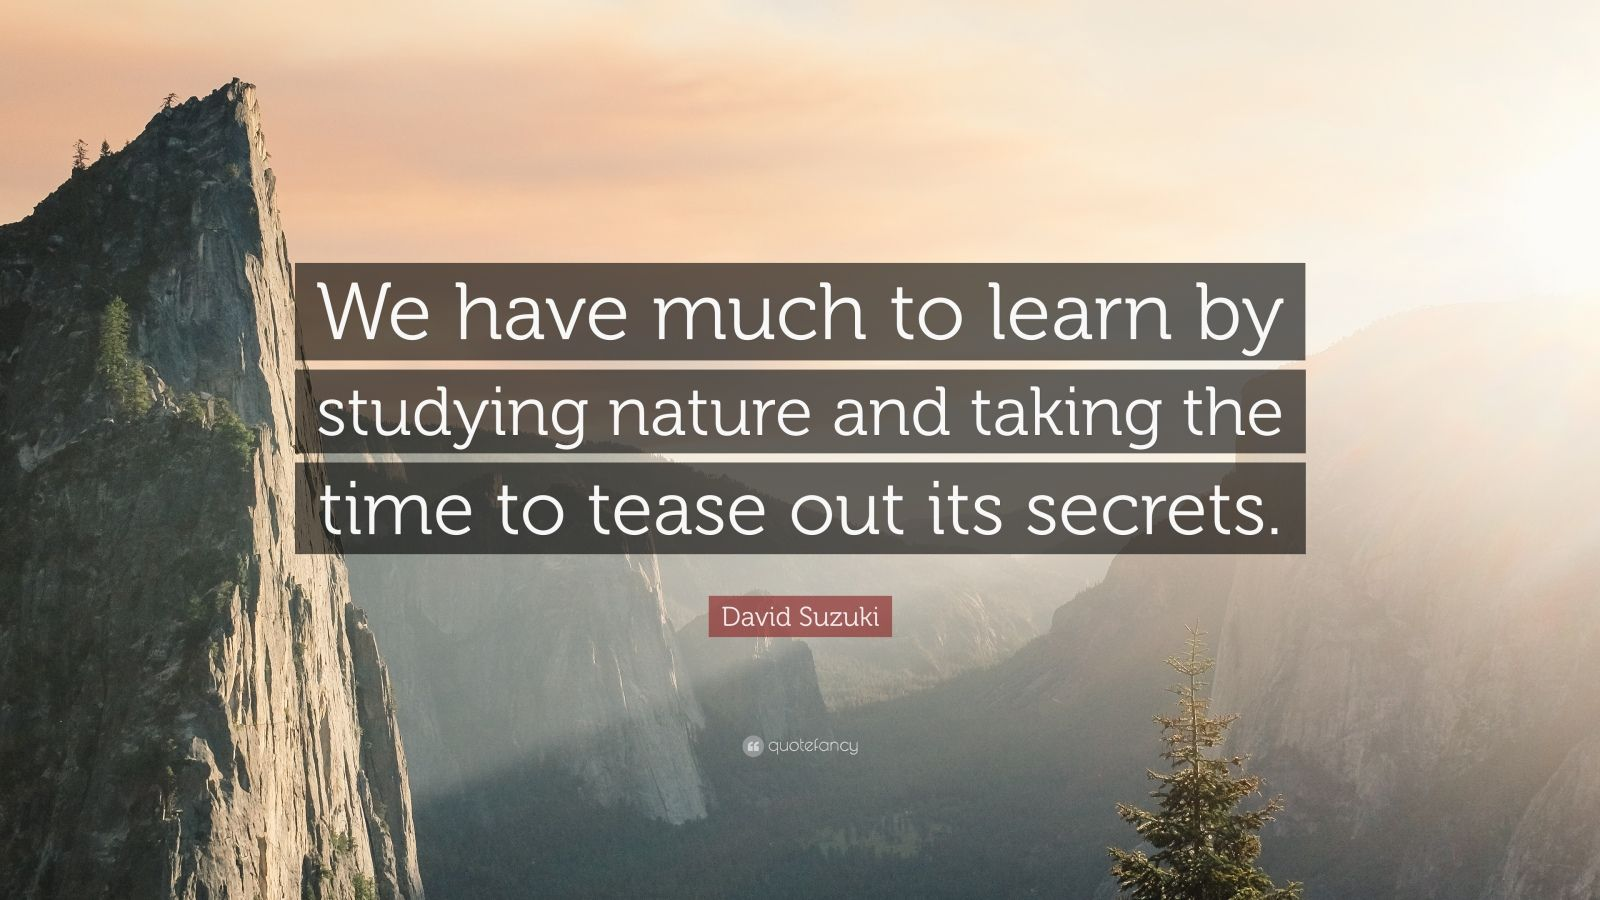 """David Suzuki Quote: """"We have much to learn by studying nature and taking the time to tease out its secrets."""""""